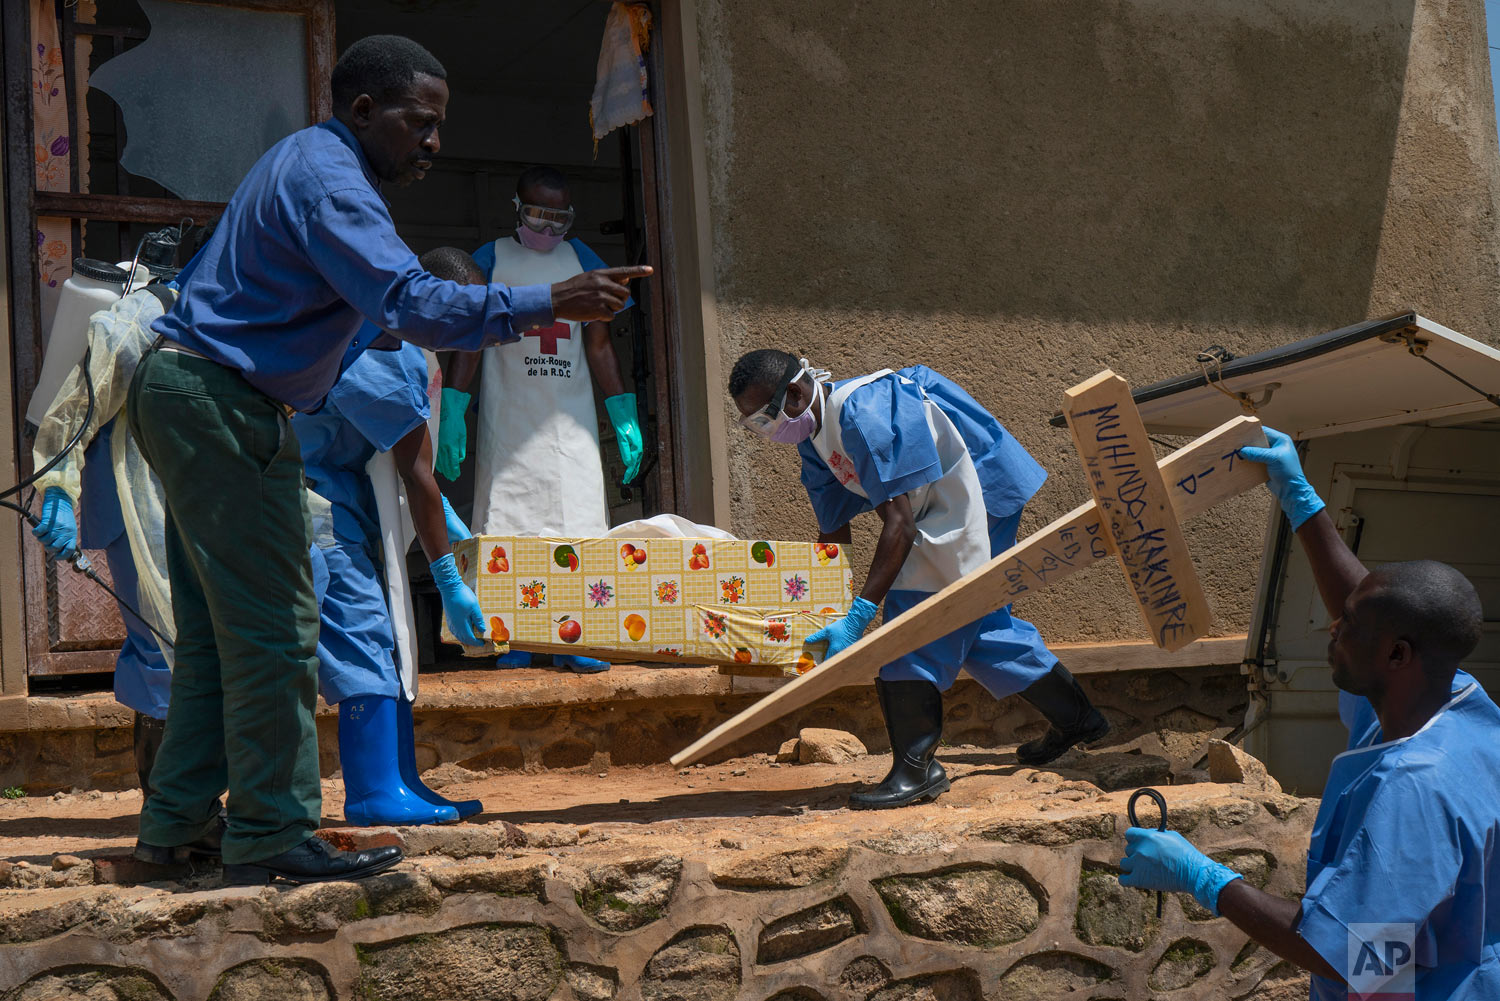 Red Cross workers carry the remains of 16-month-old Muhindo Kakinire from the morgue into a truck as health workers disinfect the area in Beni, Congo, July 14, 2019. (AP Photo/Jerome Delay)